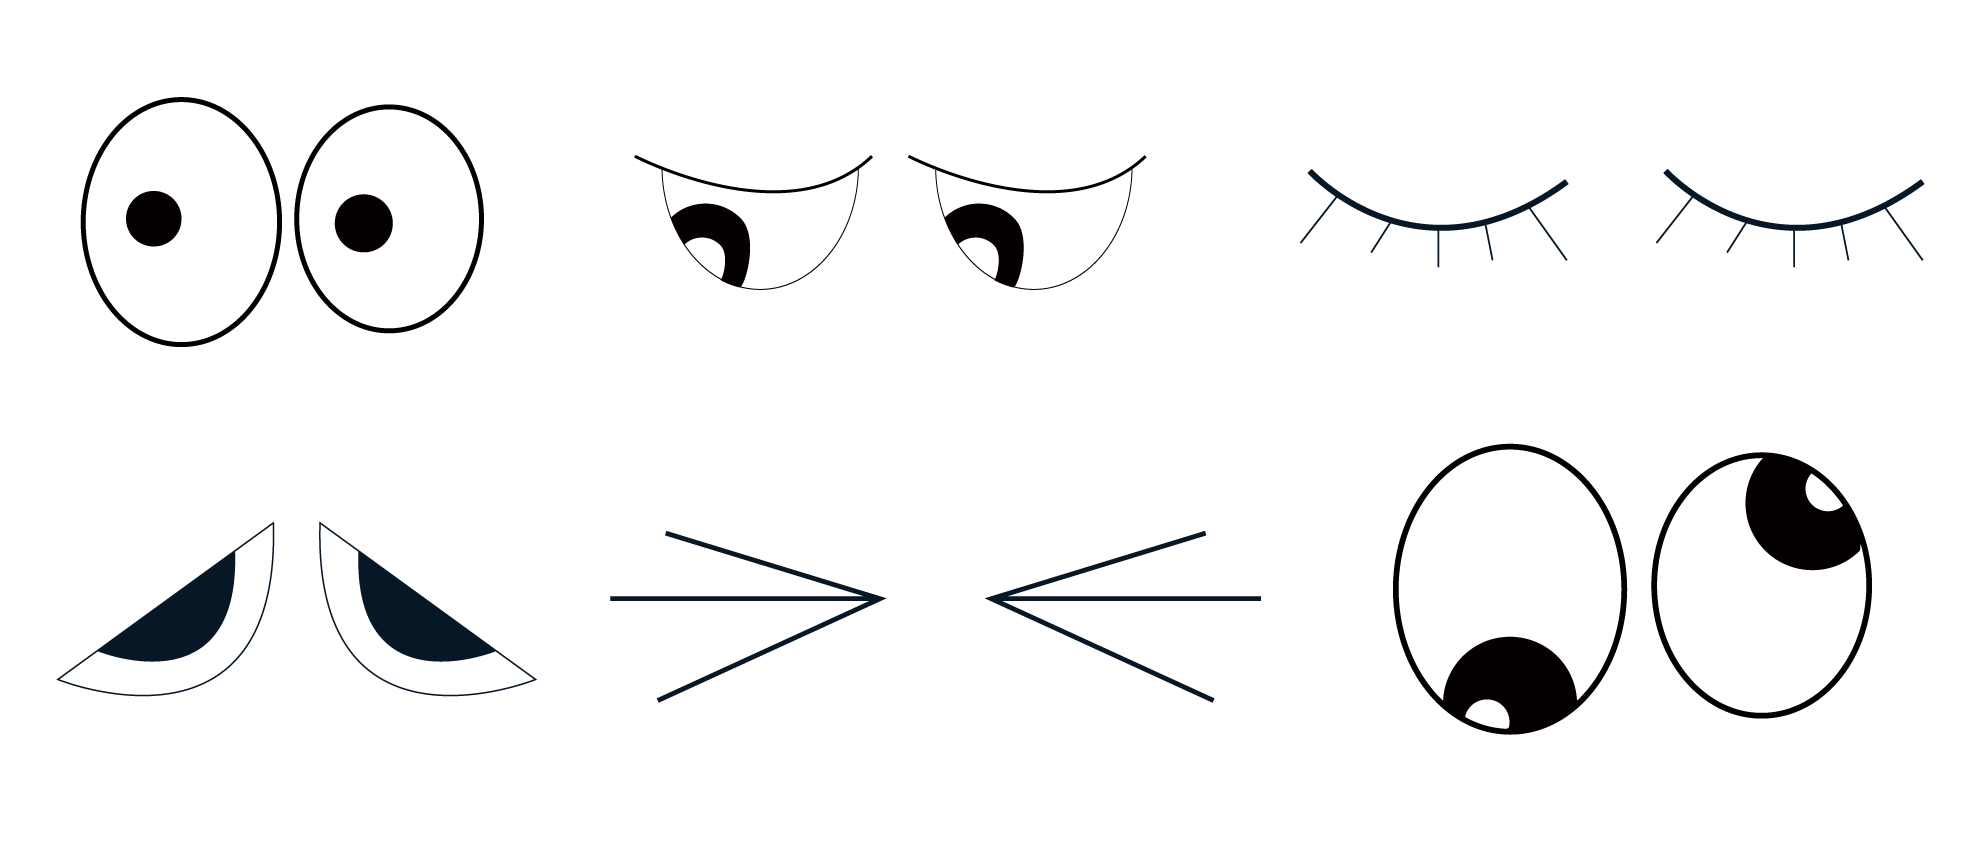 Examples of Eyes